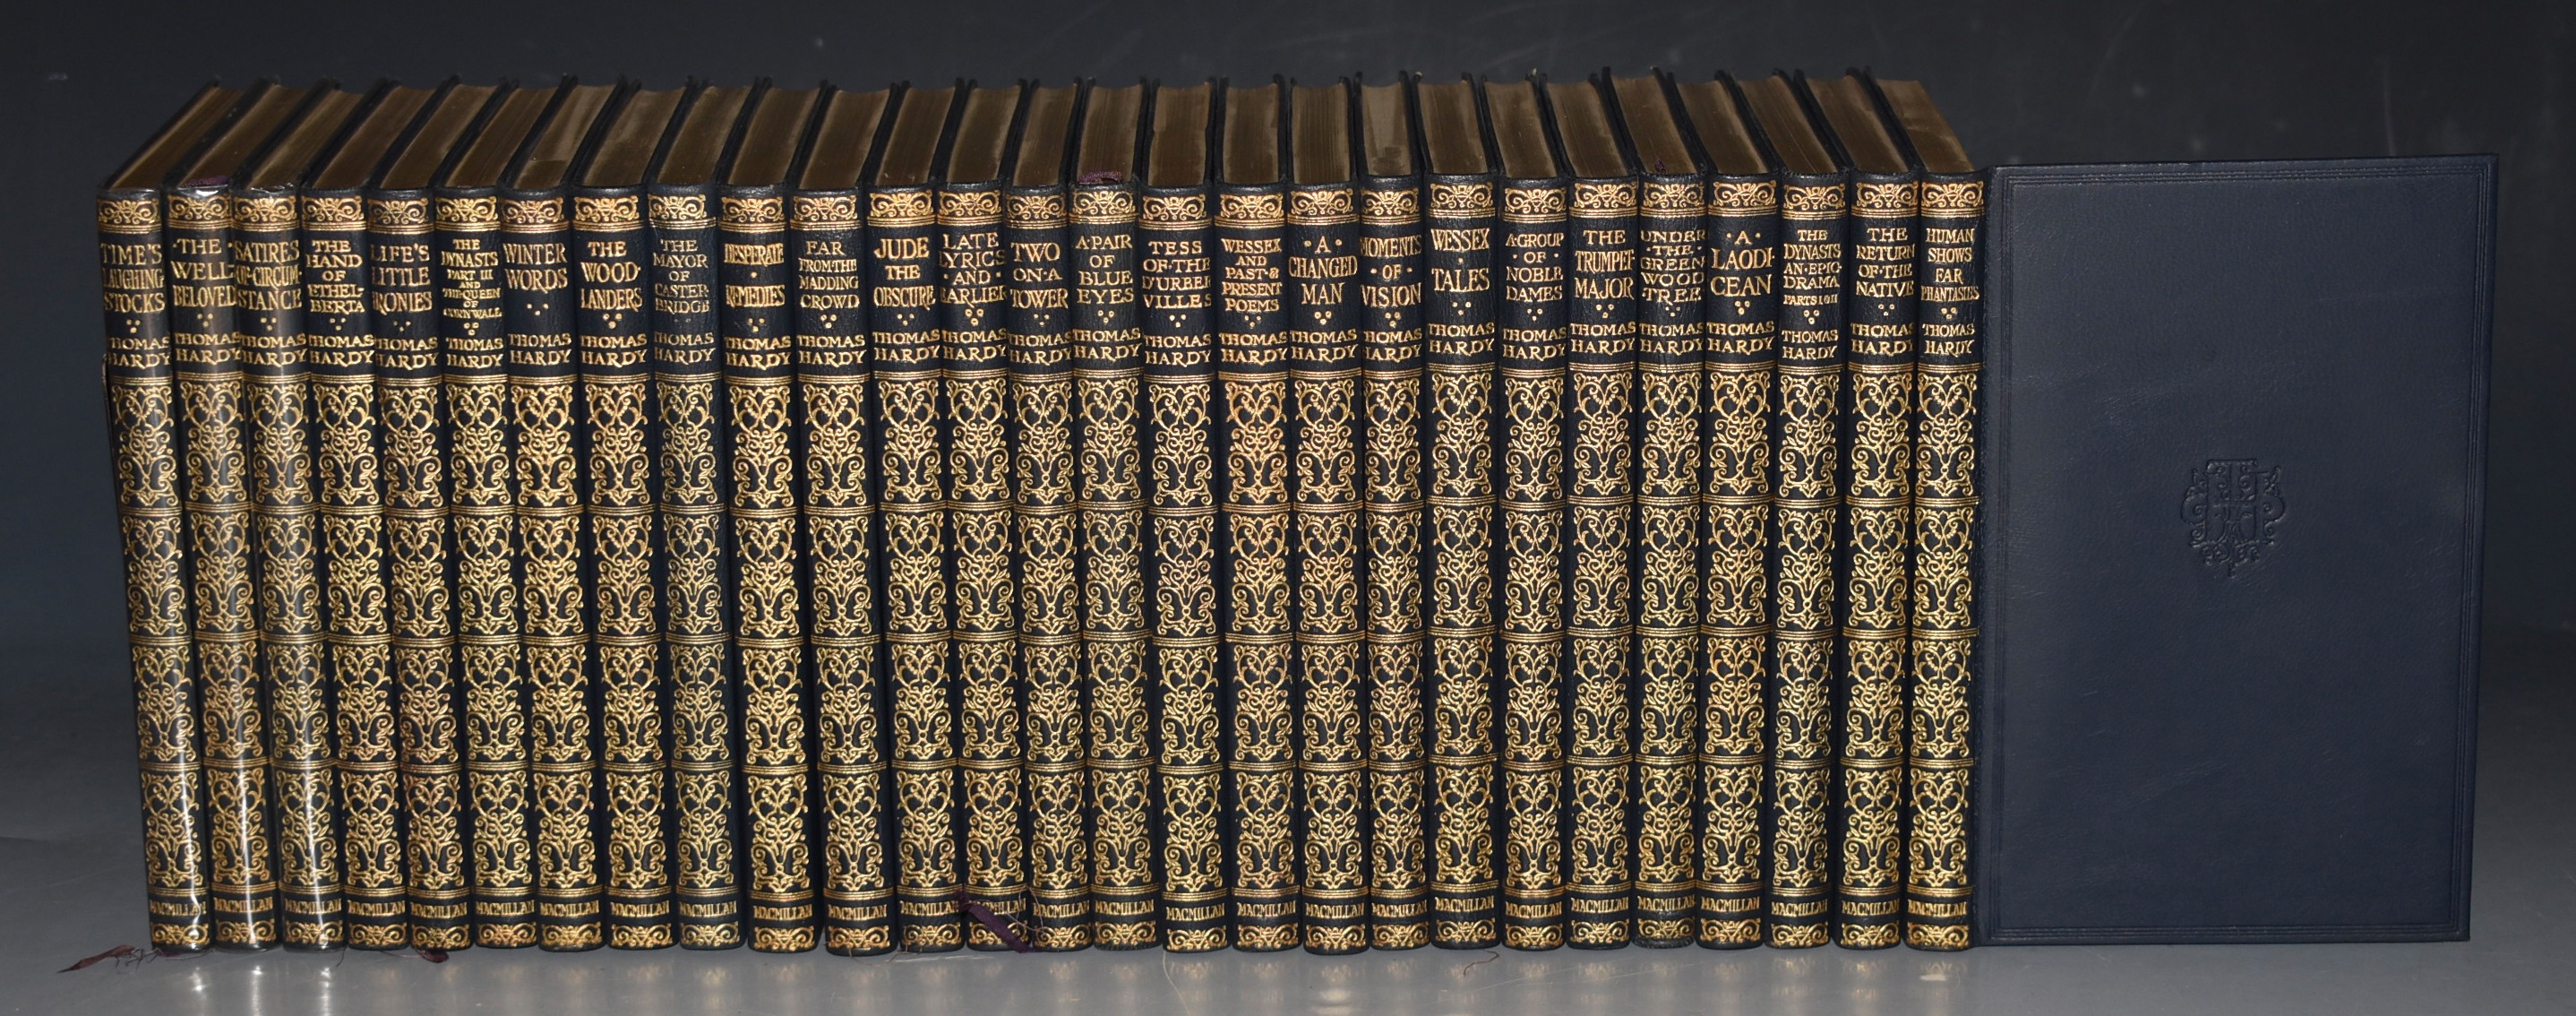 Image for Works. Complete in 27 volumes. Fine leather set of the pocket editions